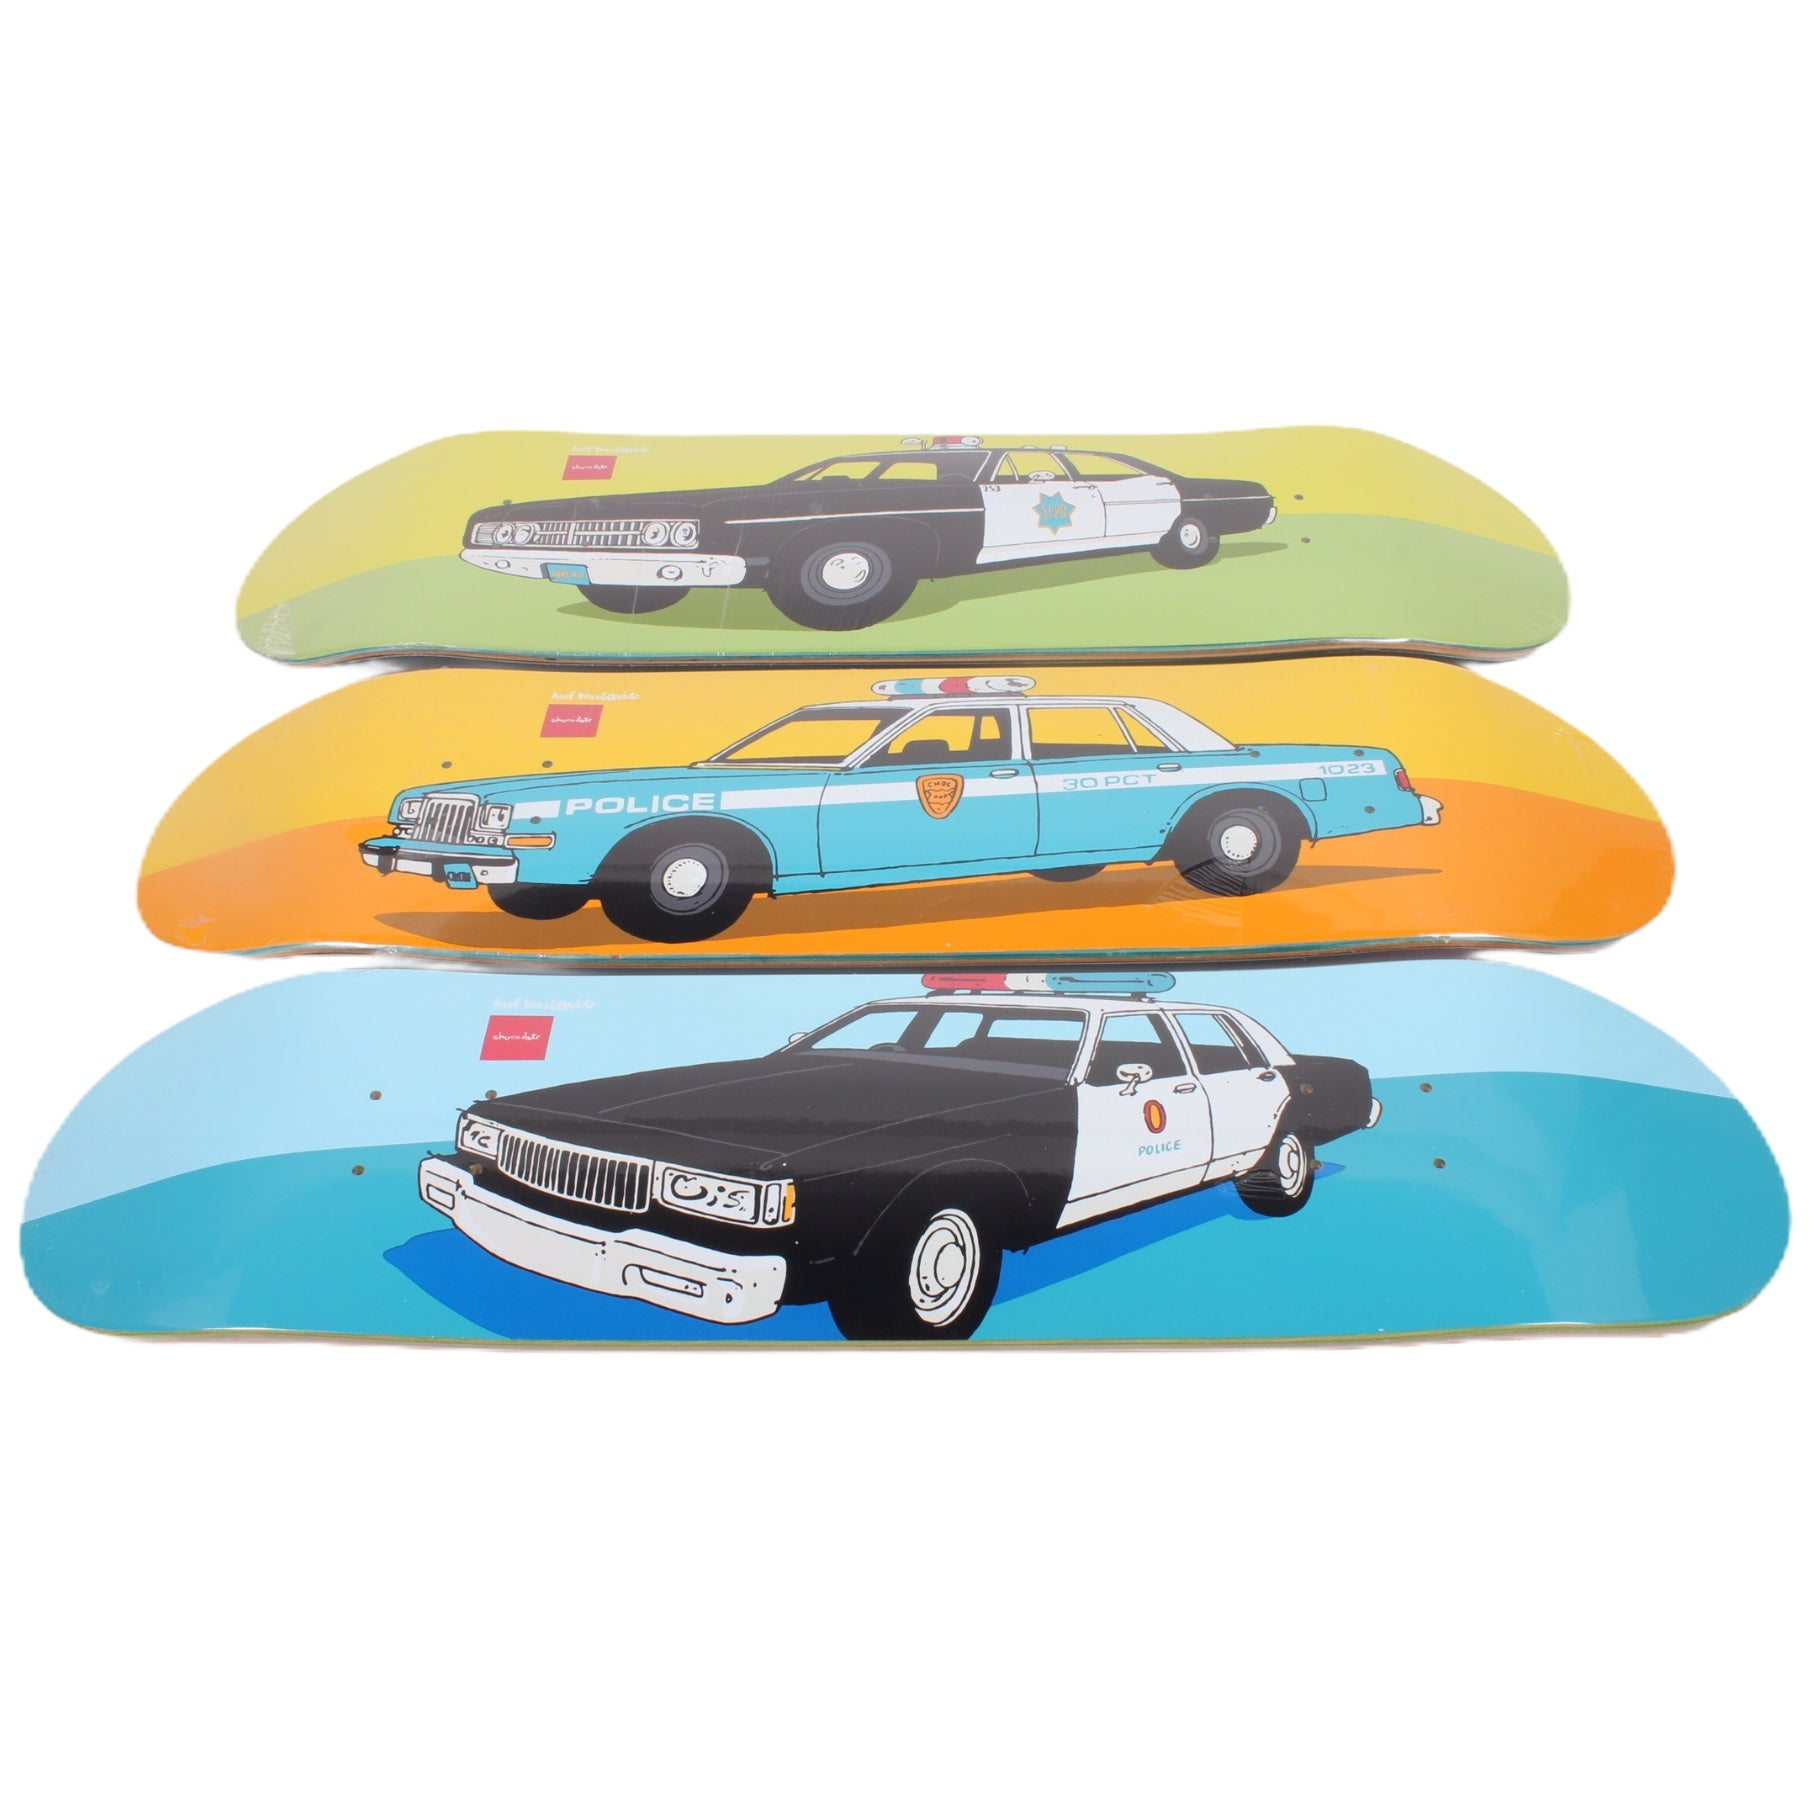 Overripe Chocolate x Huf Set of 3 Decks Cop Cars by Evan Hecox 2016